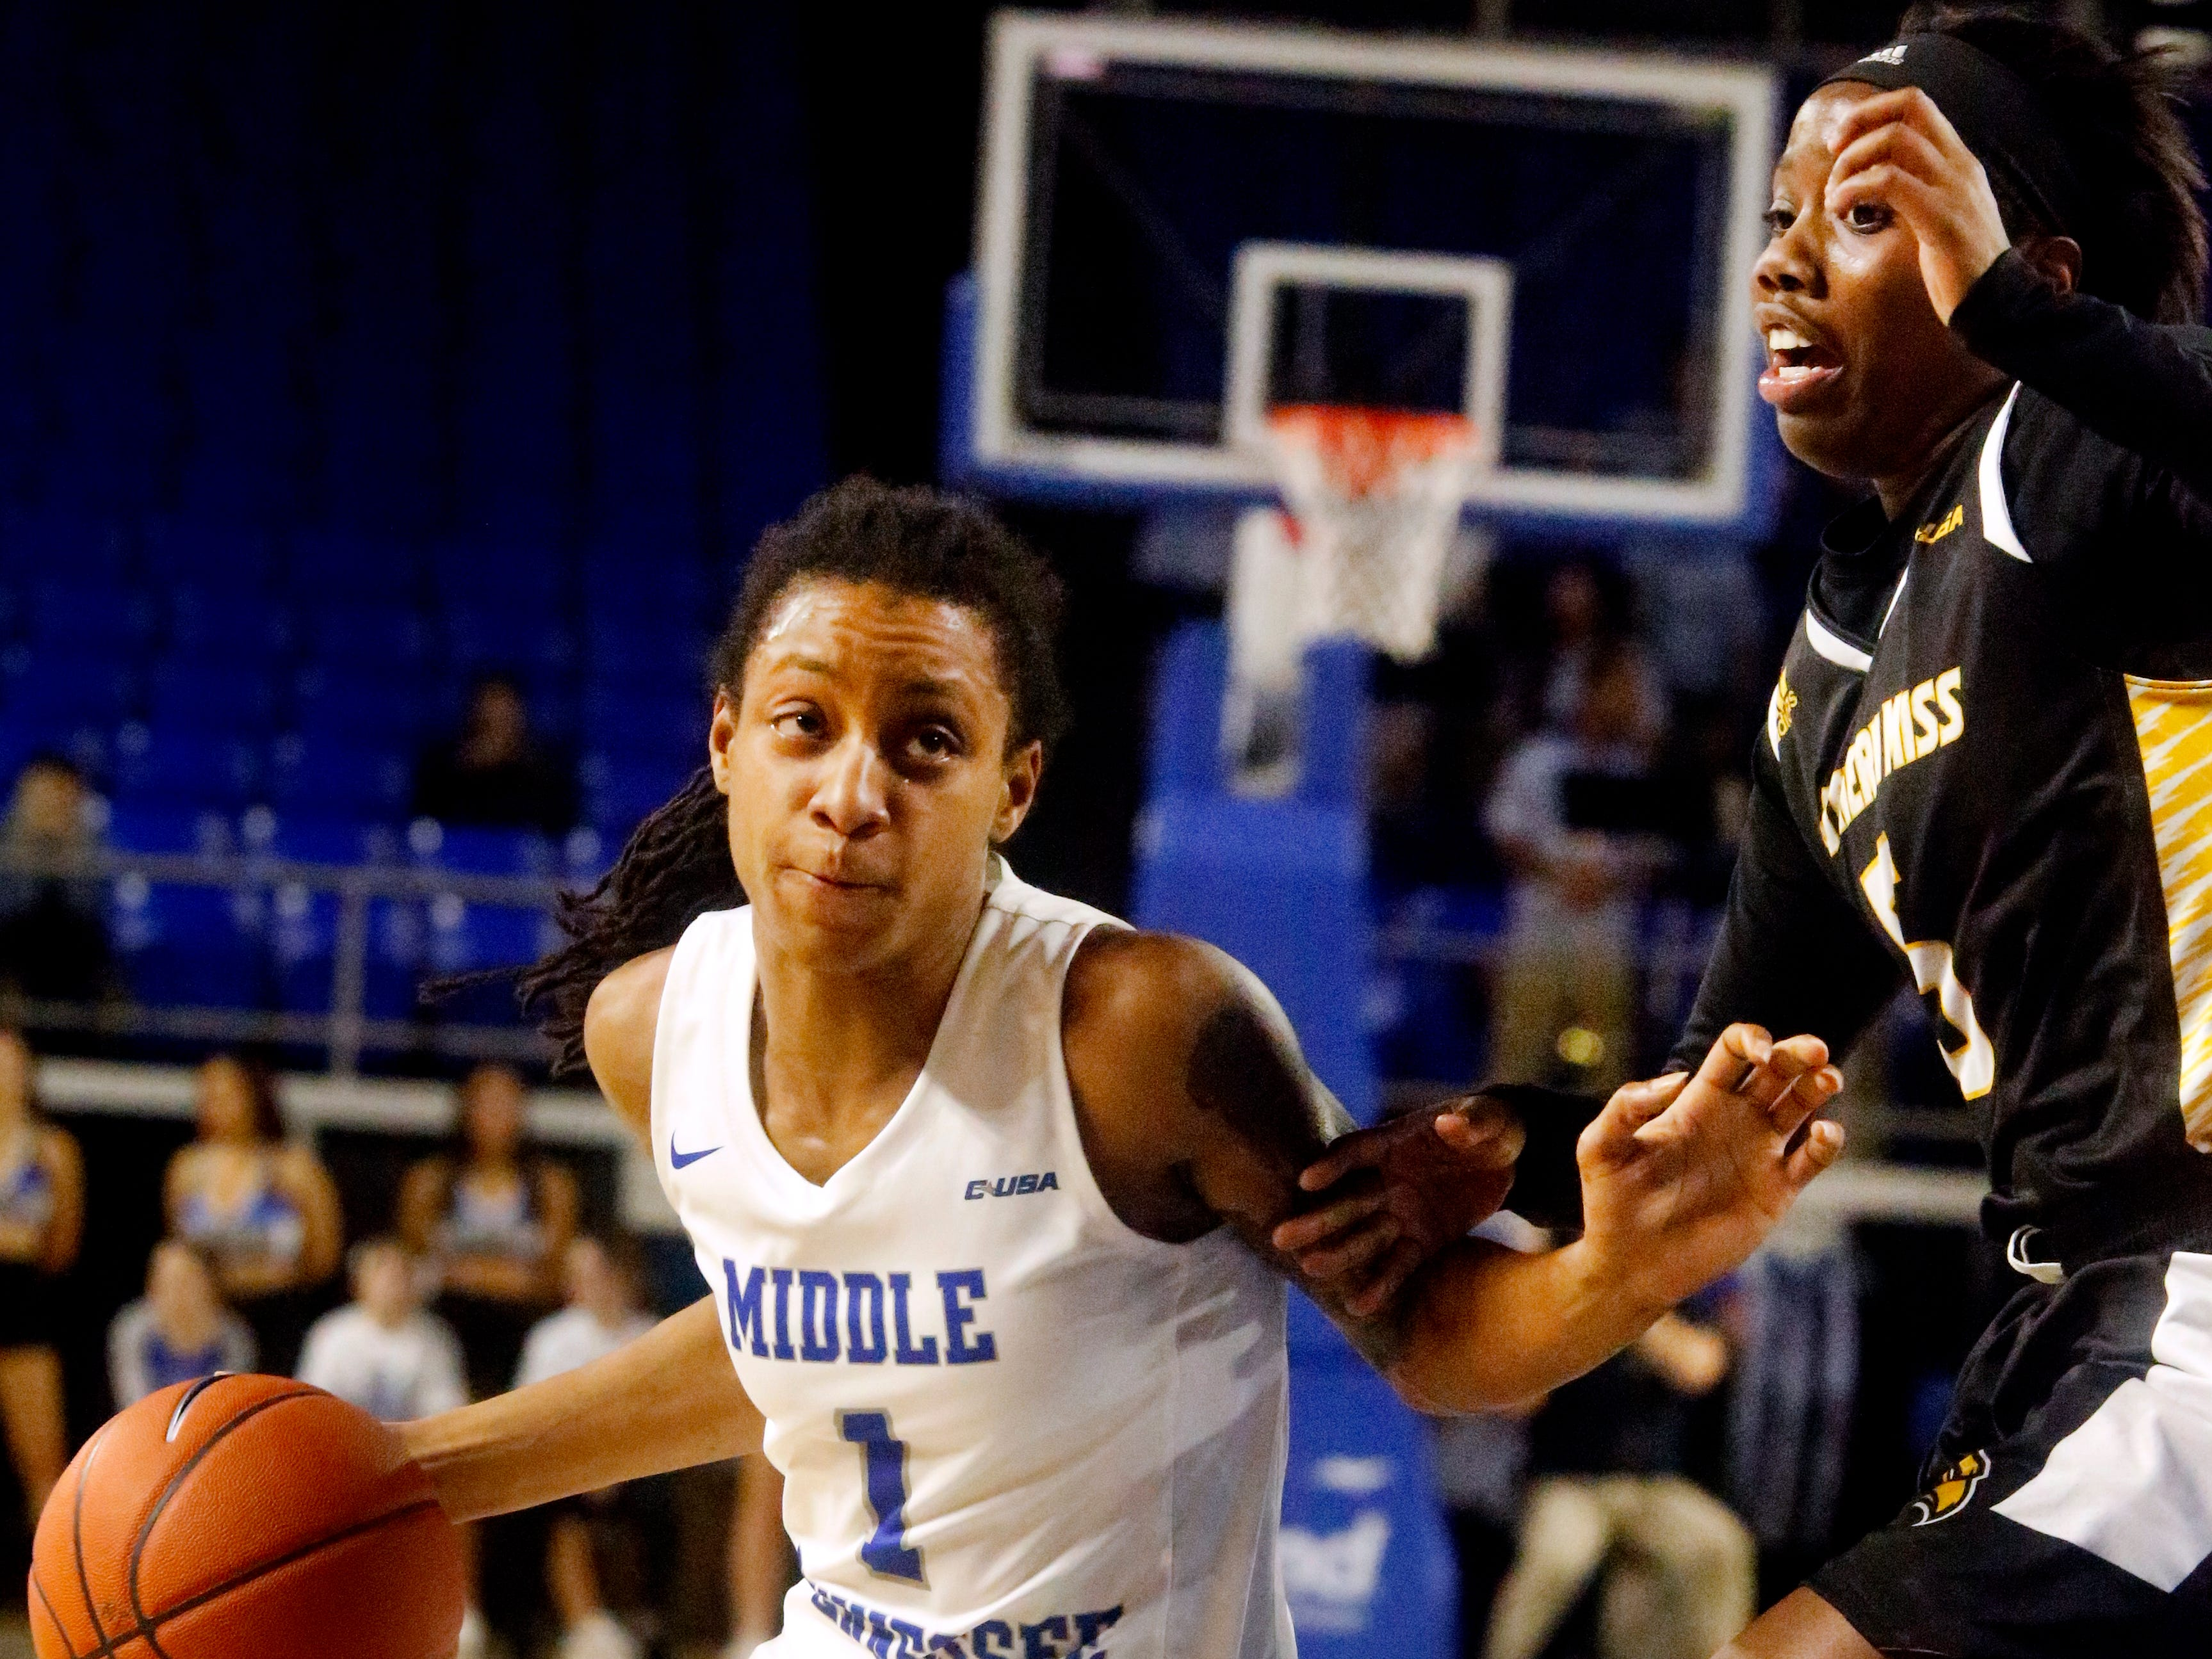 MTSU's guard A'Queen Hayes (1) pushes around Southern Miss' Shonte Hailes (5) to head to the basket, on Thursday Jan. 10, 2019.